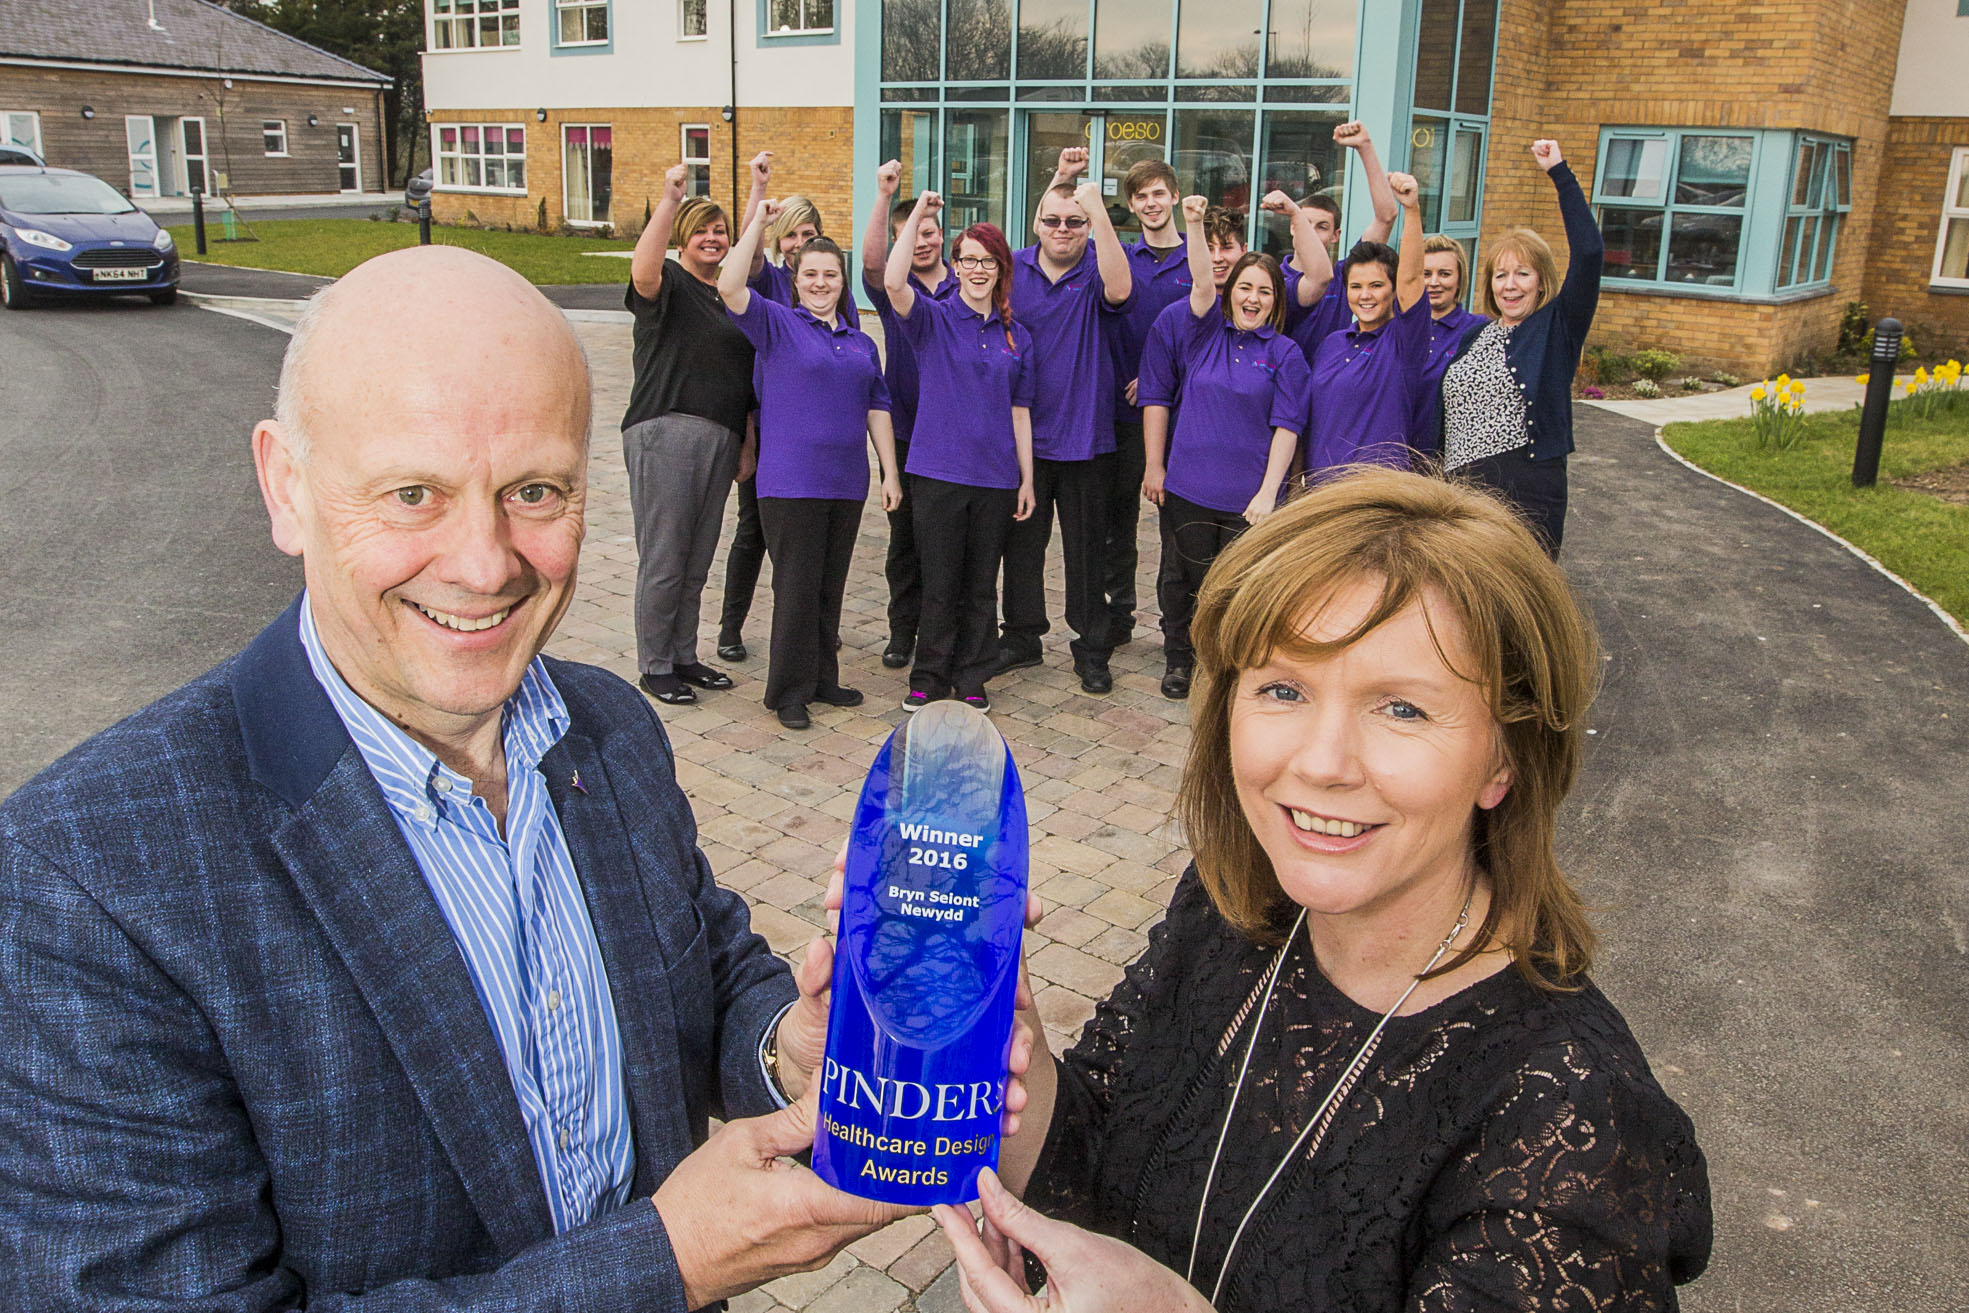 Bryn Seiont Newydd crowned as best new care home in UK